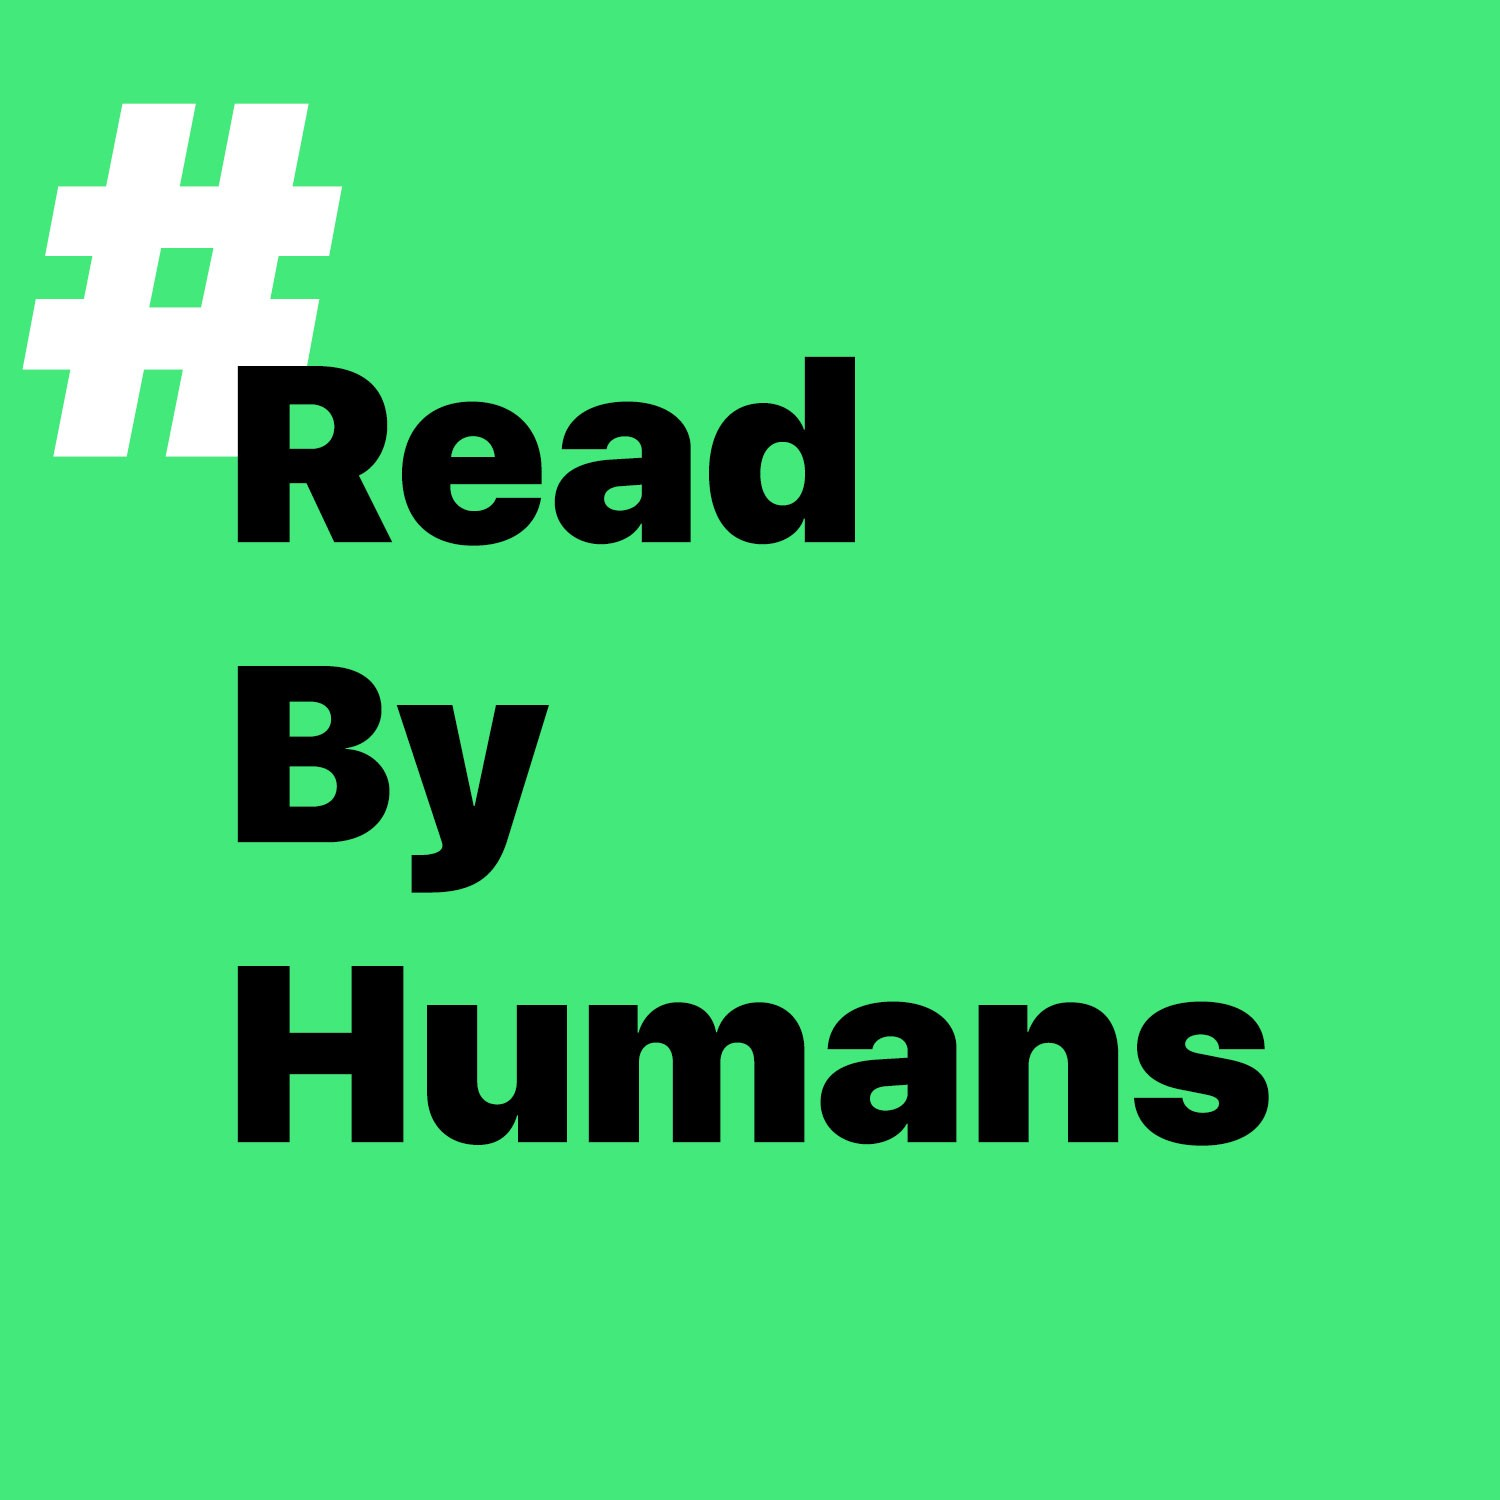 readbyhumans logo